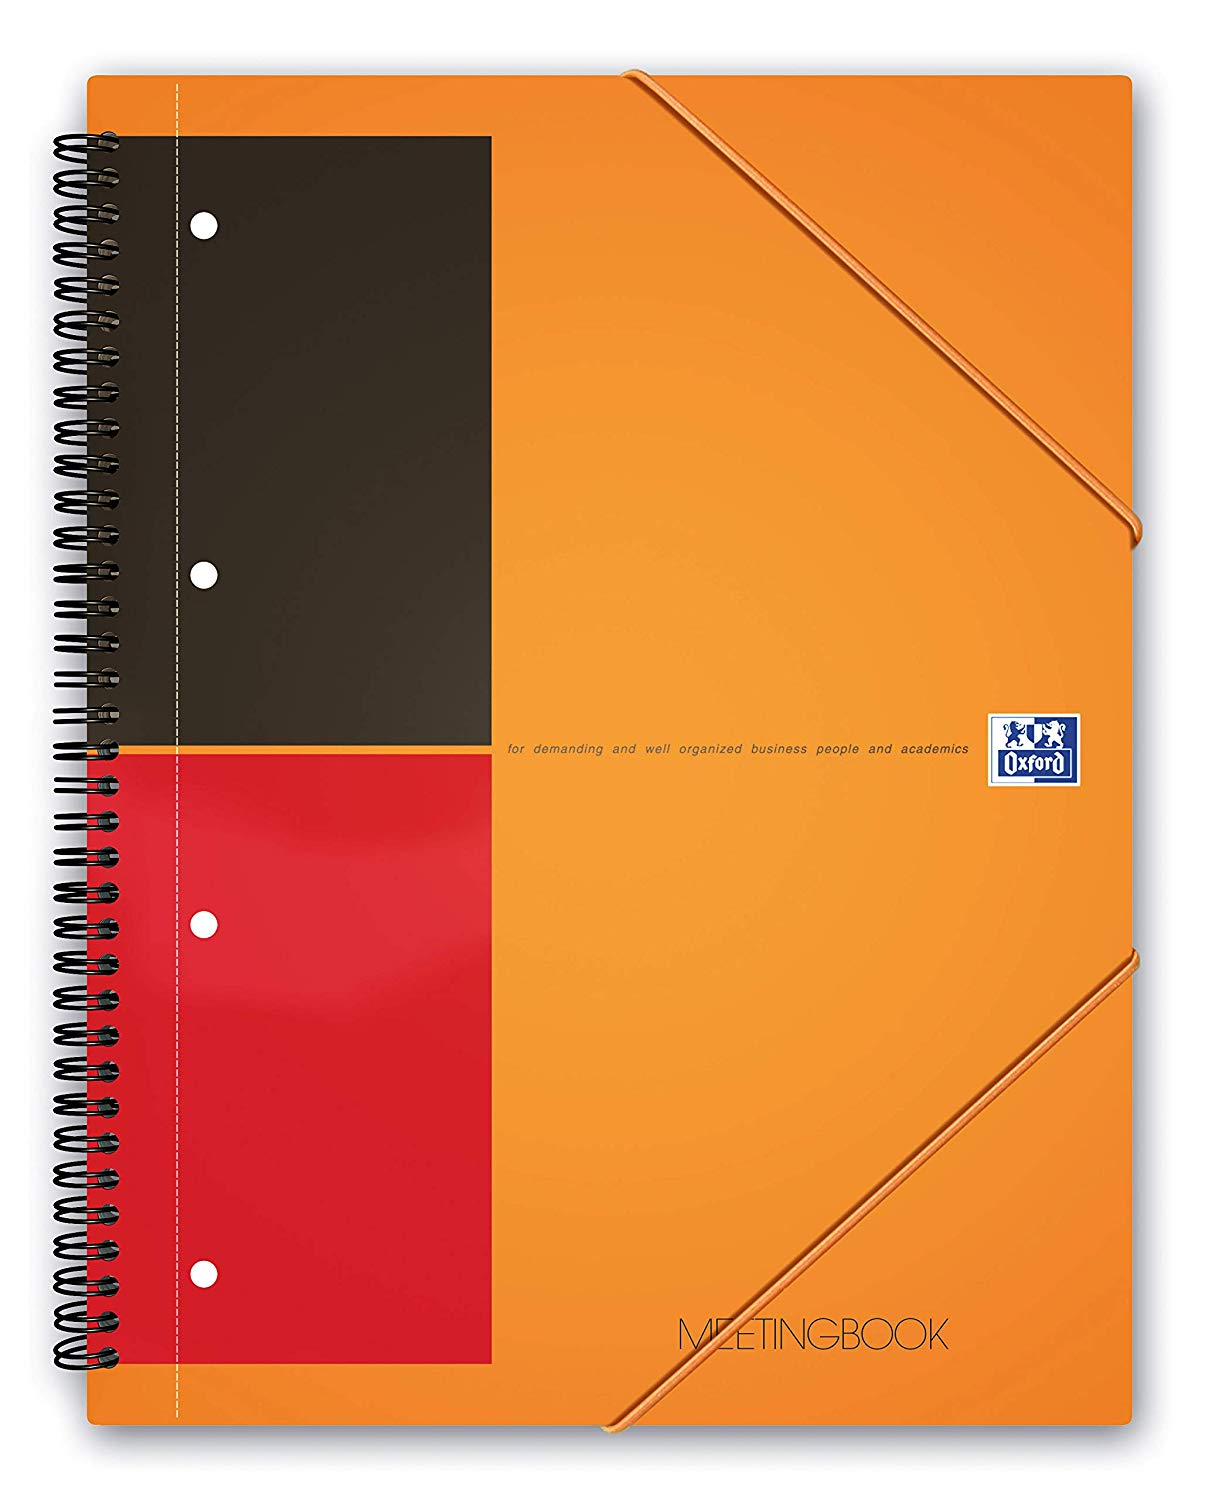 Caiet cu spirala A4+, OXFORD International Meetingbook, 80 file-80g/mp, 4 perf., coperta PP - dictan